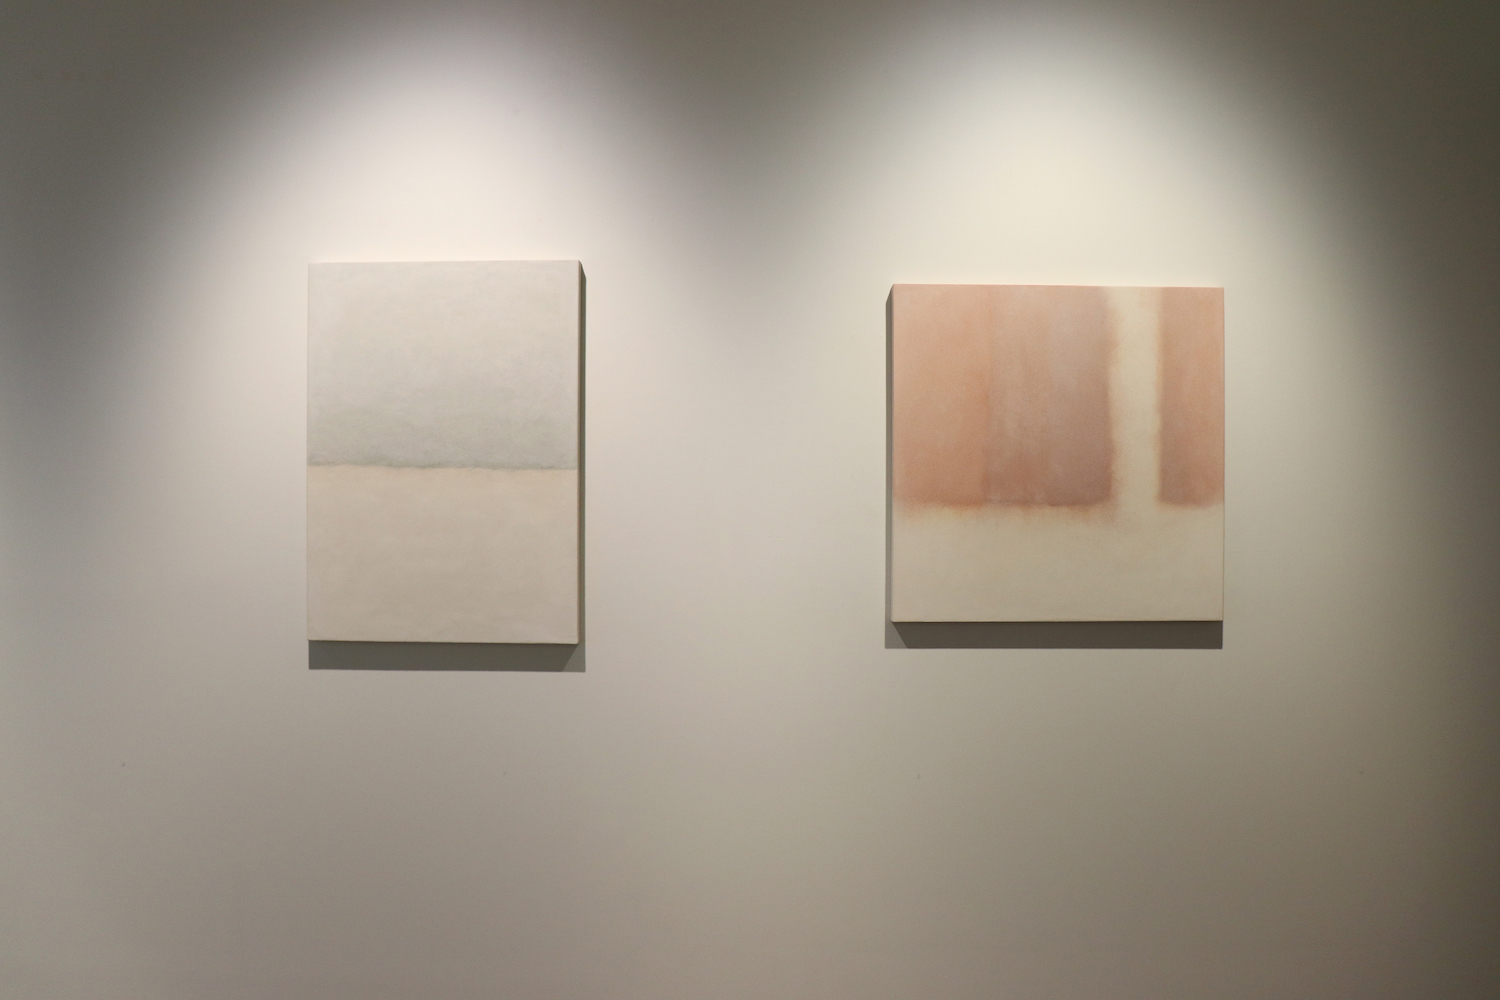 Yoon Heechang   left: Something (#835), 2013, ceramic powder and acrylic medium on panel 83 x 60 cm (image)  / right: Kamo River (#914), 2014,  fired sand from Kamo River, ceramic powder and acrylic medium on panel 72.7 x 72.7 cm (image)